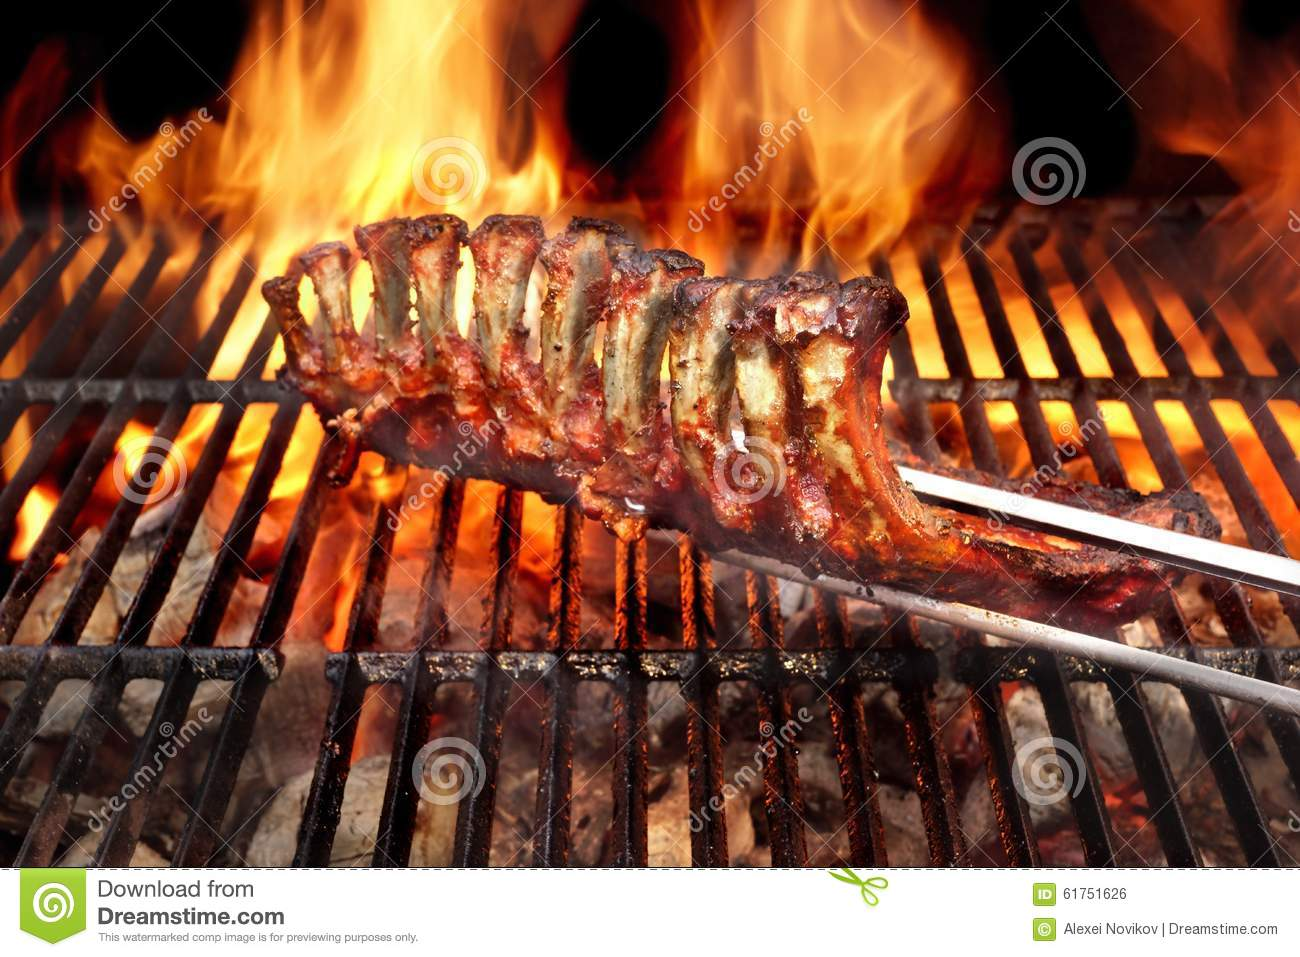 Grille Spareribs På Gasgrill : Picture of spareribs on grill with hot marinade